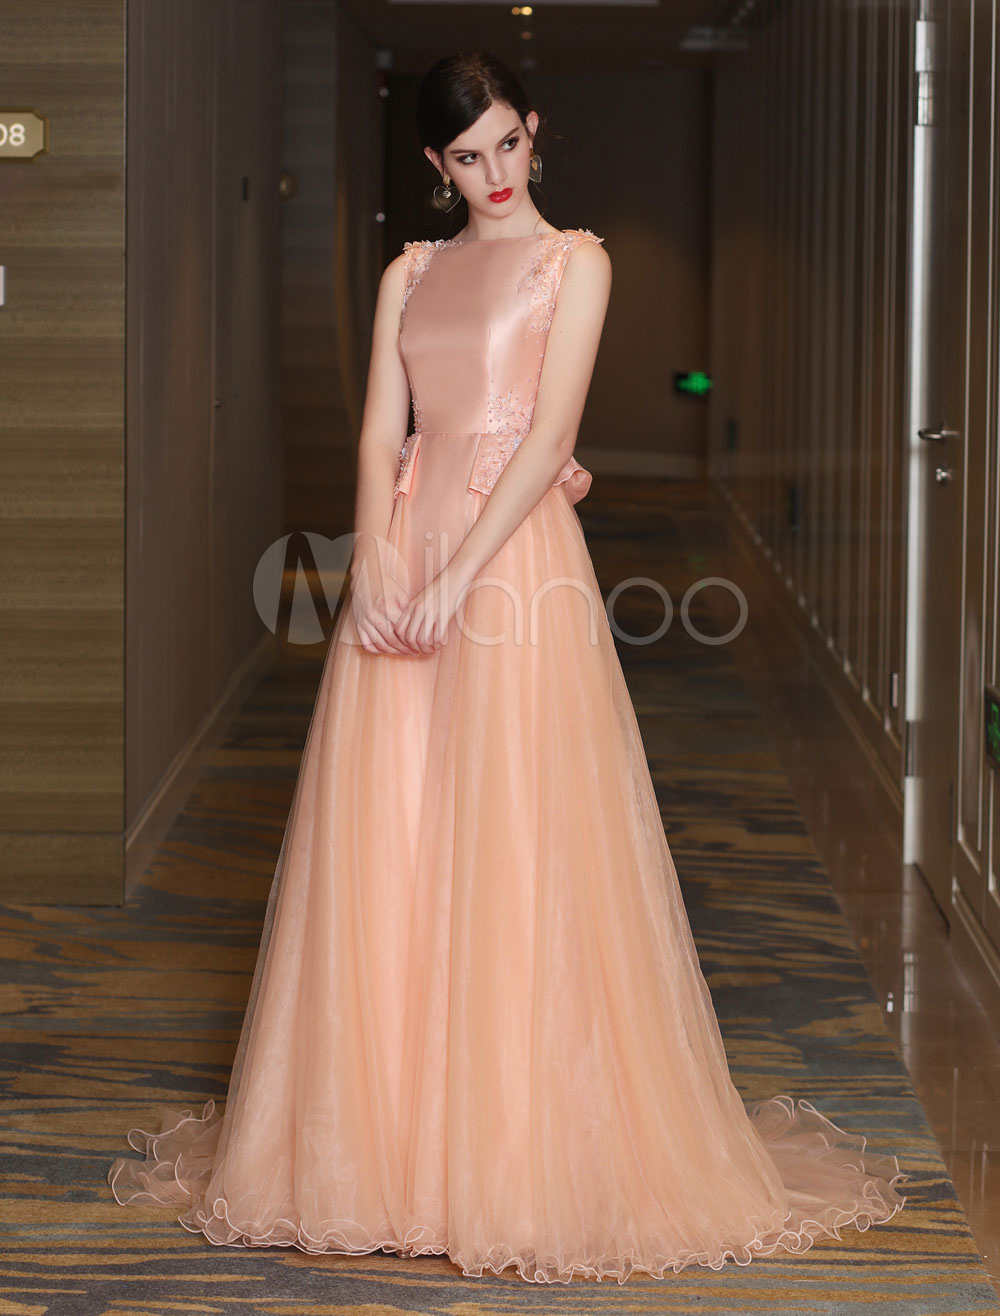 Buy Peplum Prom Dress Long Luxury Evening Dresses Satin Tulle Bateau Lace Applique Beading Orange Formal Dresses With Train for $289.79 in Milanoo store